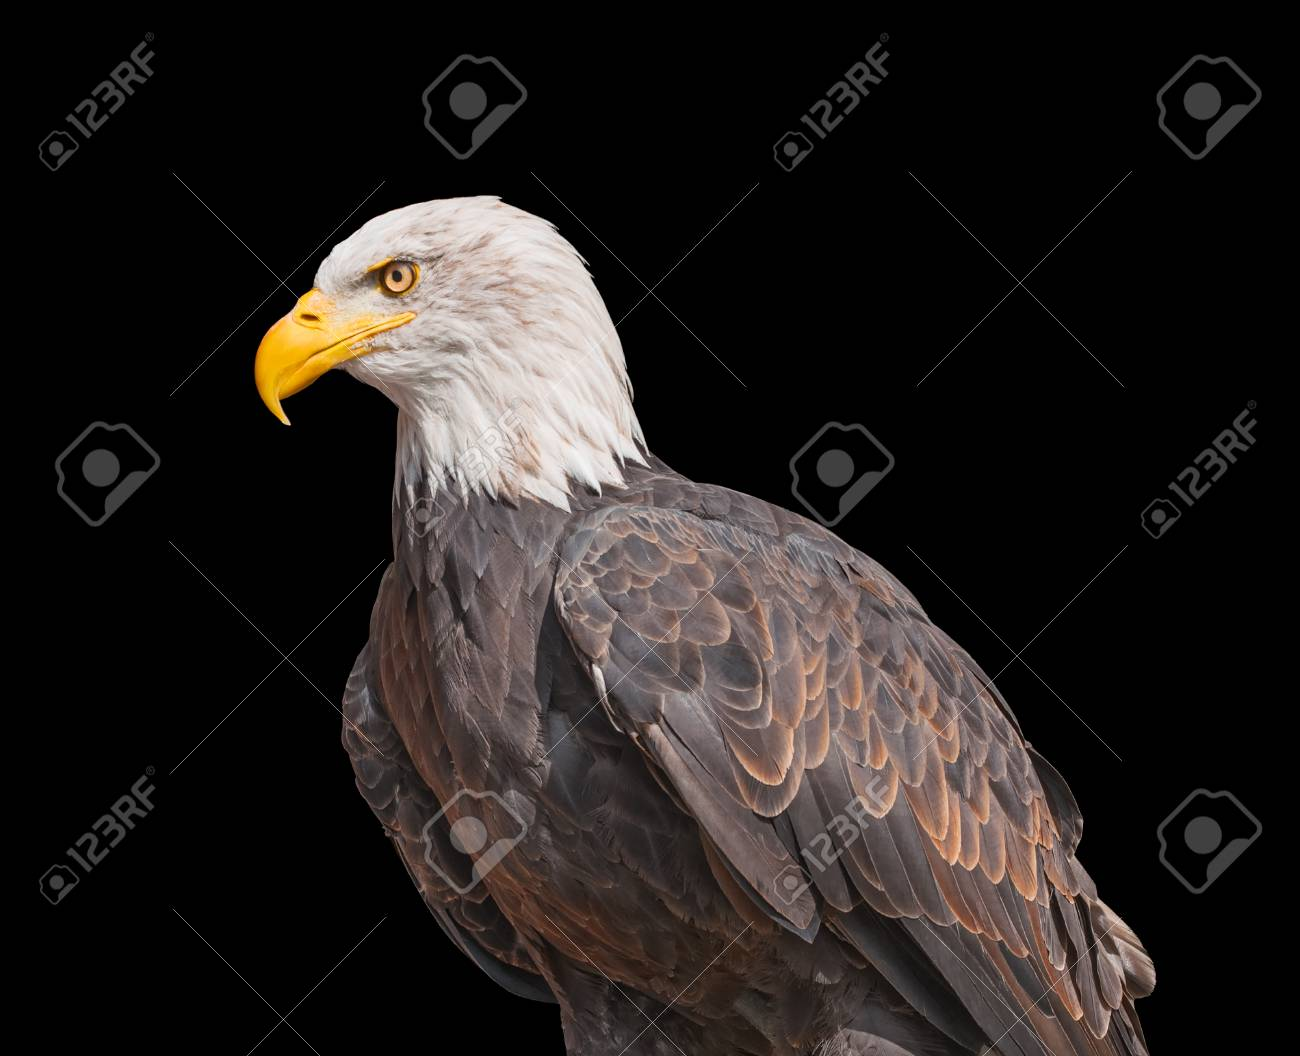 American Bald Eagle Isolated On Black Background North American Stock Photo Picture And Royalty Free Image Image 89105865